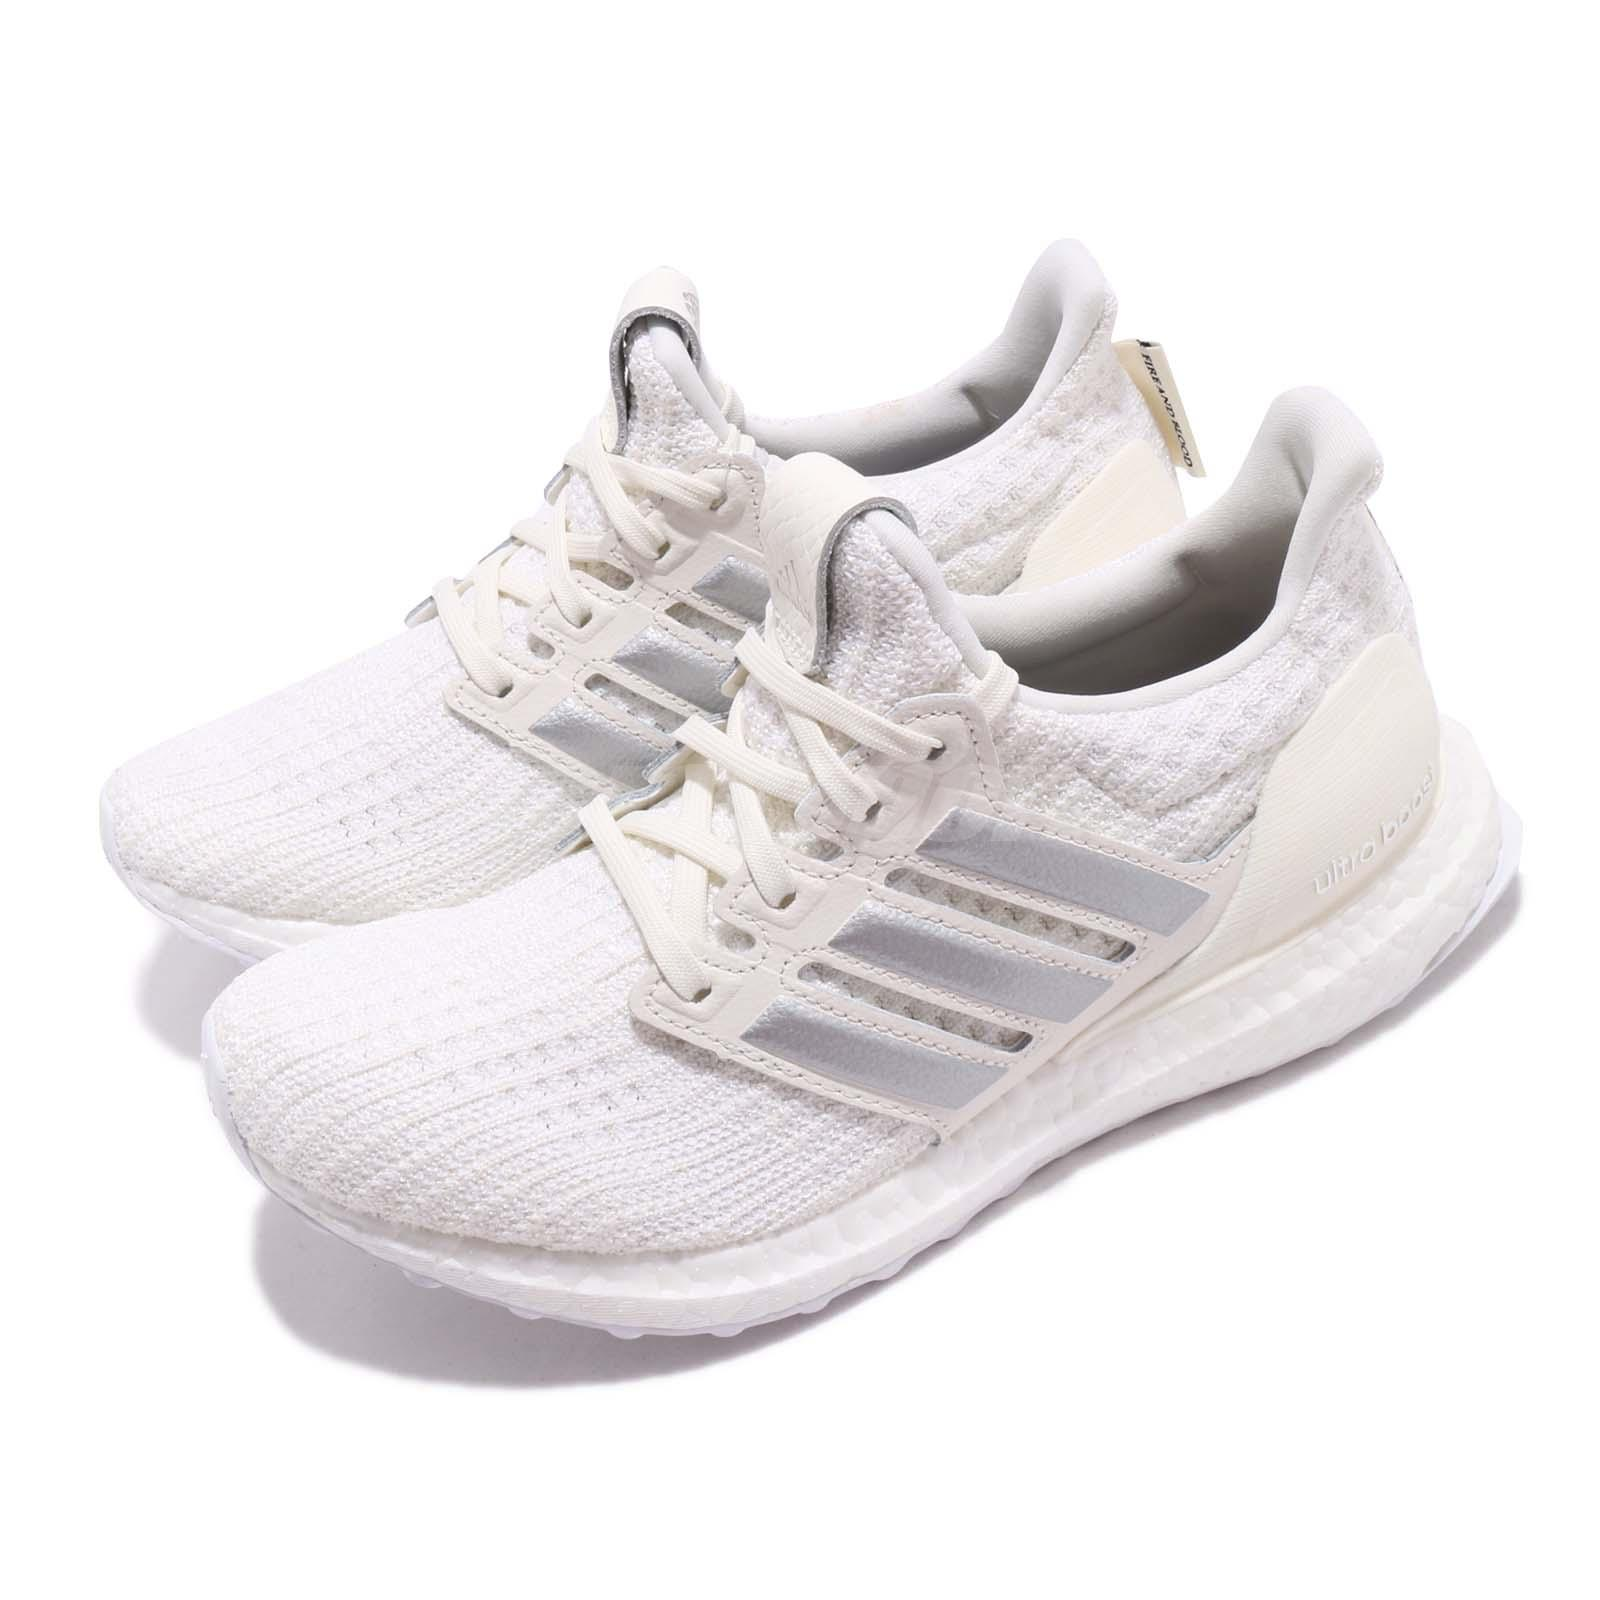 Details about adidas UltraBOOST Game Of Thrones House Targaryen White Silver Women Shoe EE3711